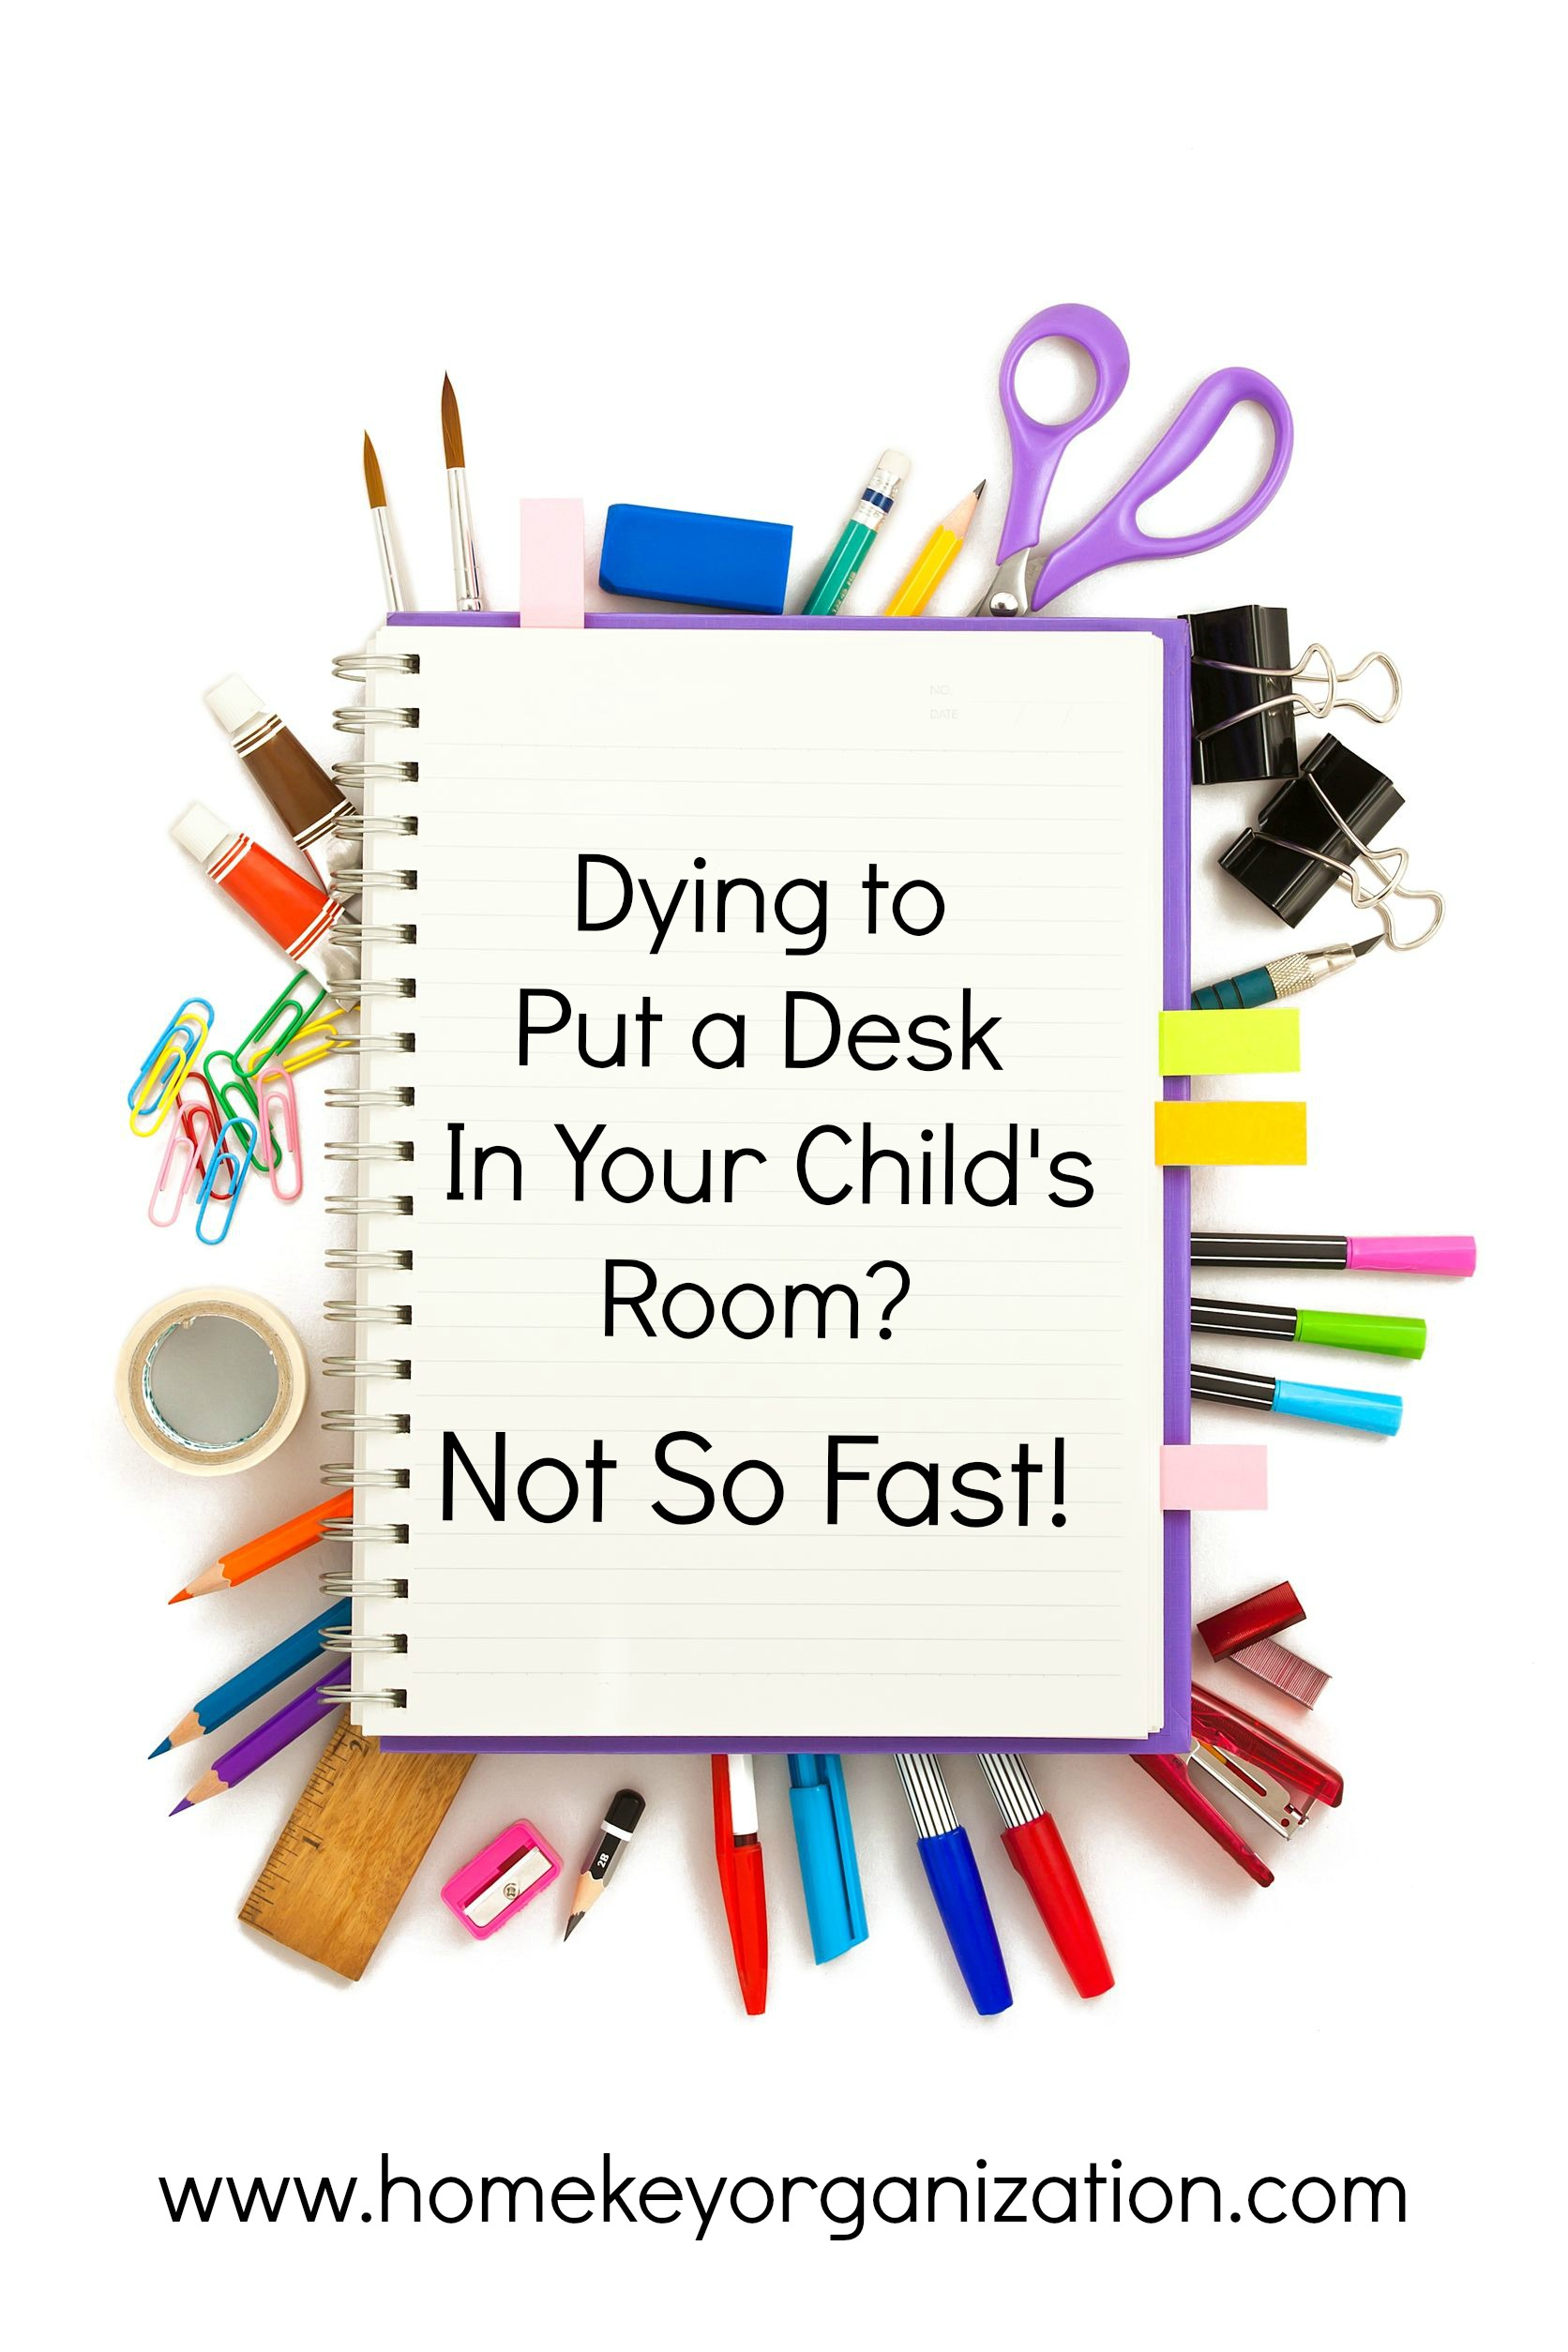 Dying To Put A Desk In Your Child's Room? Not So Fast